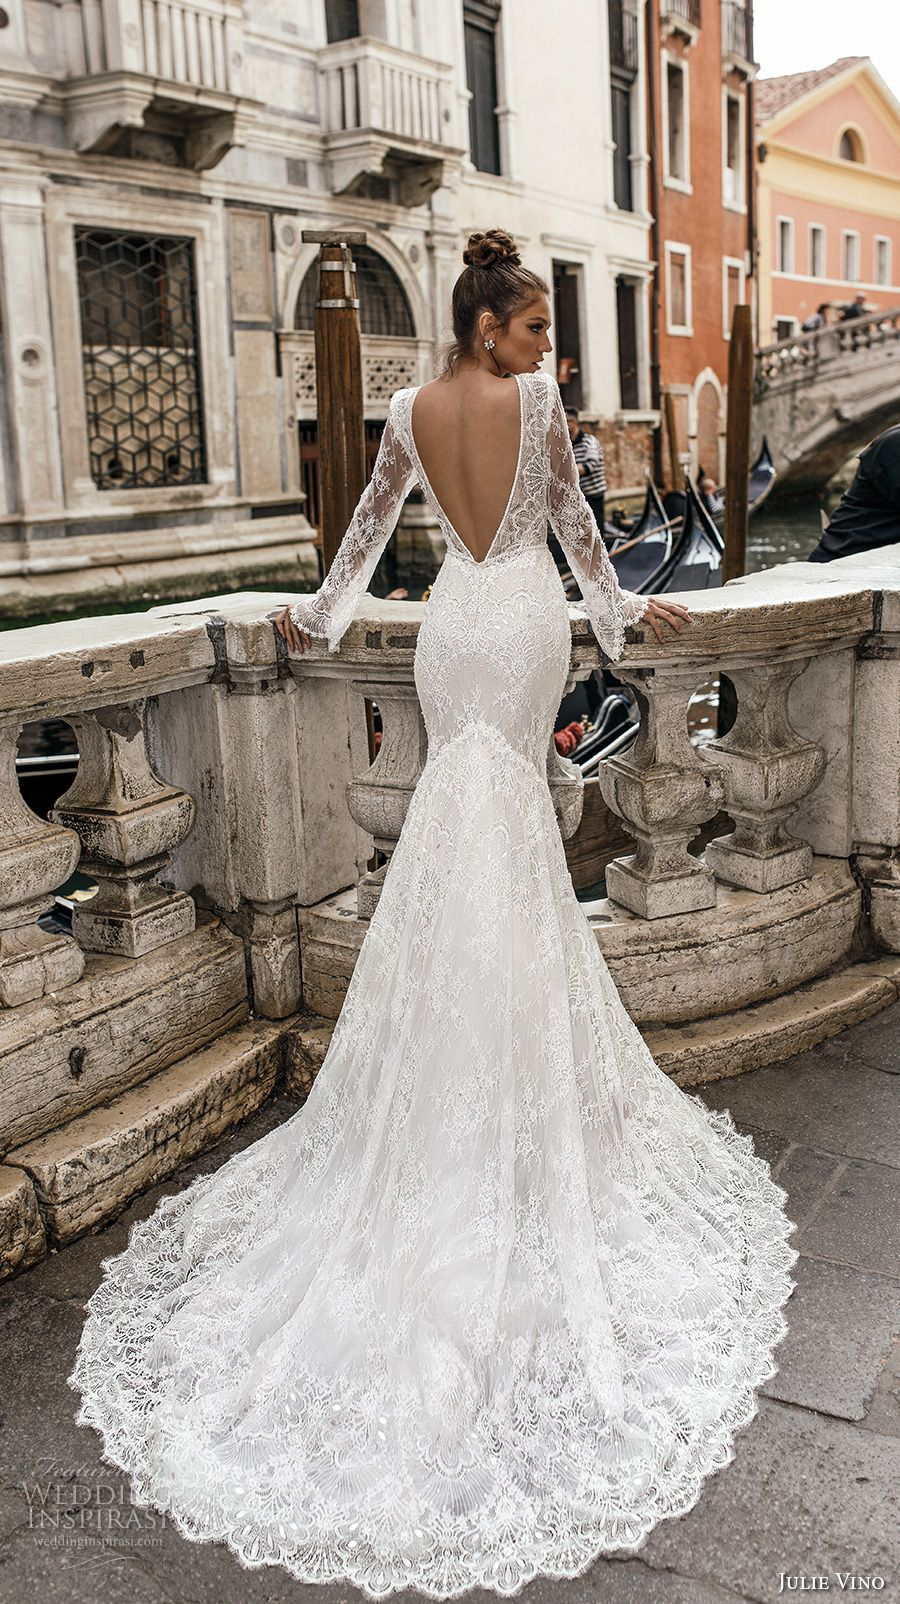 julie vino spring 2018 bridal long sleeves deep plunging v neck full  embellishment lace elegant sexy fit and flare wedding dress open v back  chapel train ... ff726cff8